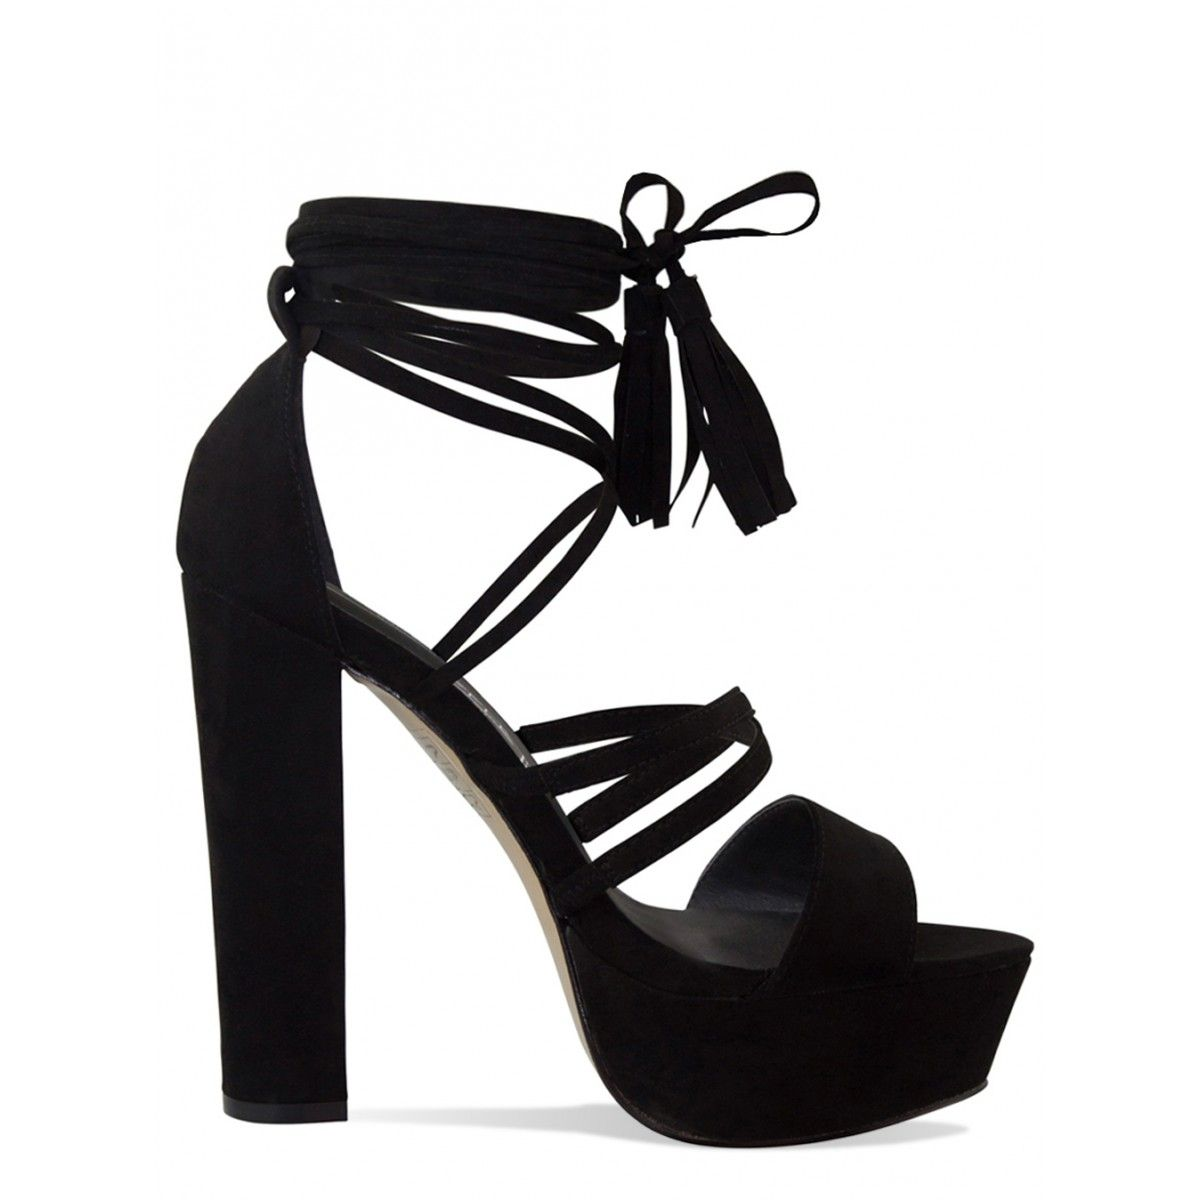 a1634e96d7b Joyce Black Suede Lace Up Platform Block Heels   Simmi Shoes - Love Your  Shoes!